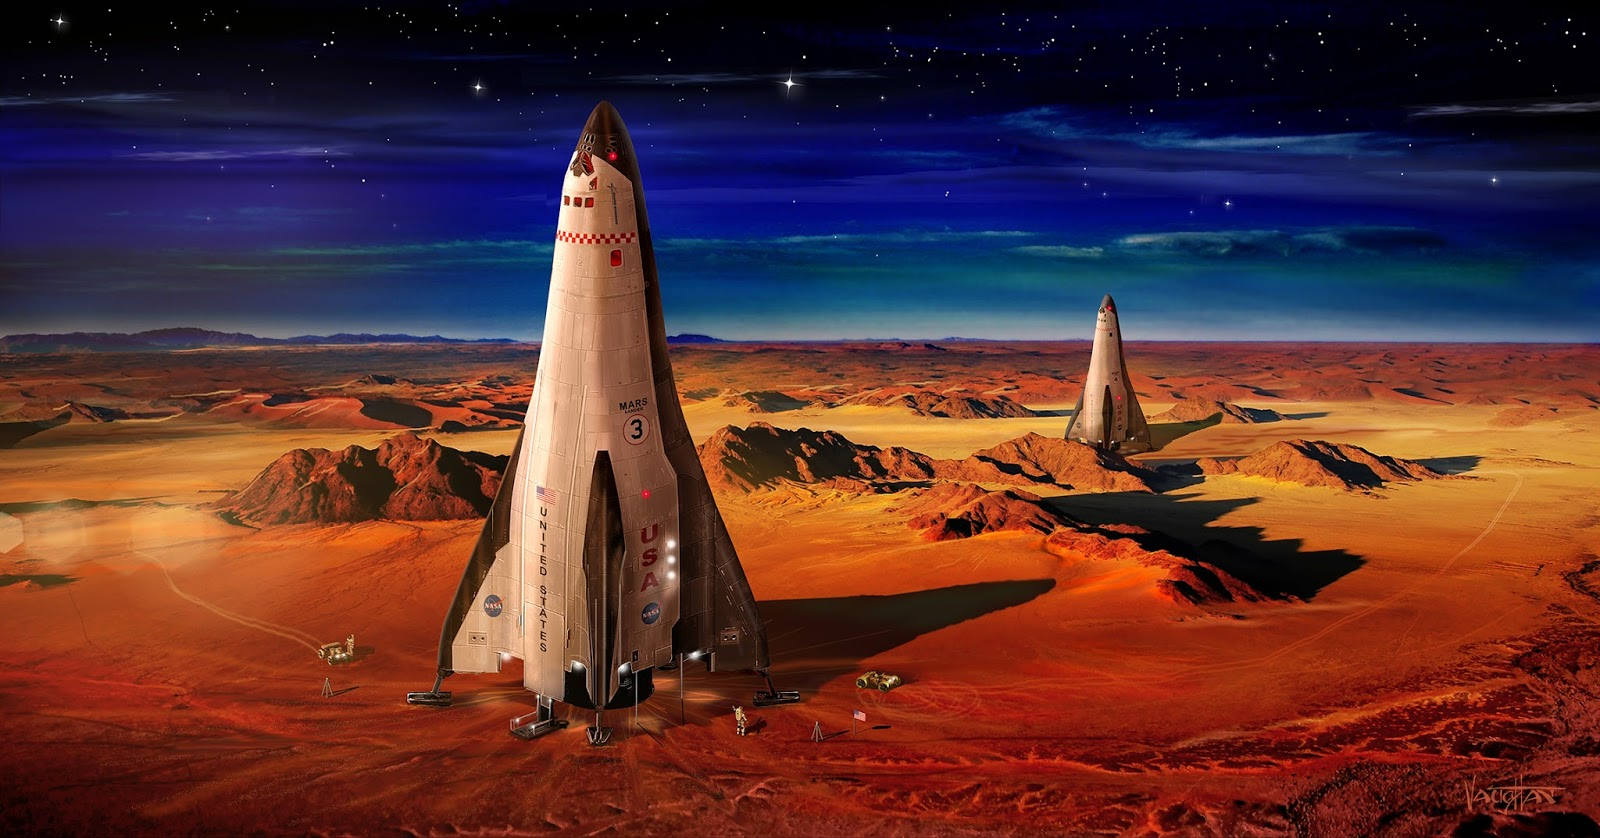 Lockheed Martin landers on Mars by James Vaughan